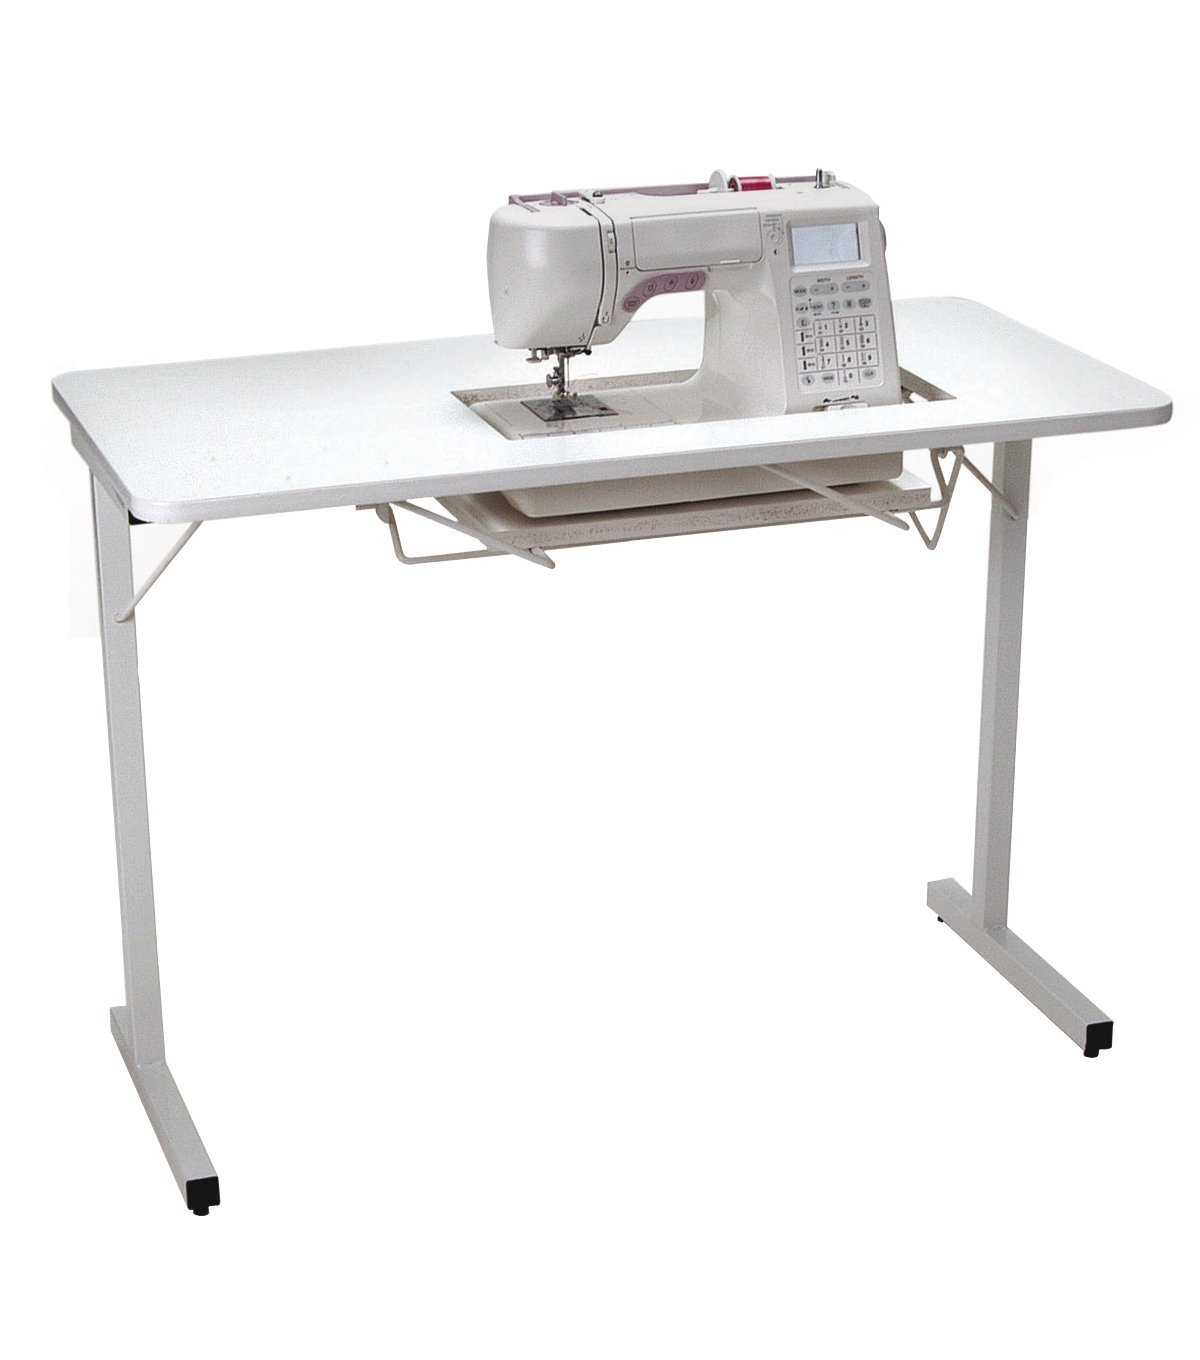 Charmant Best Sewing Table: Is Space A Problem For You? Well, Make Use Of